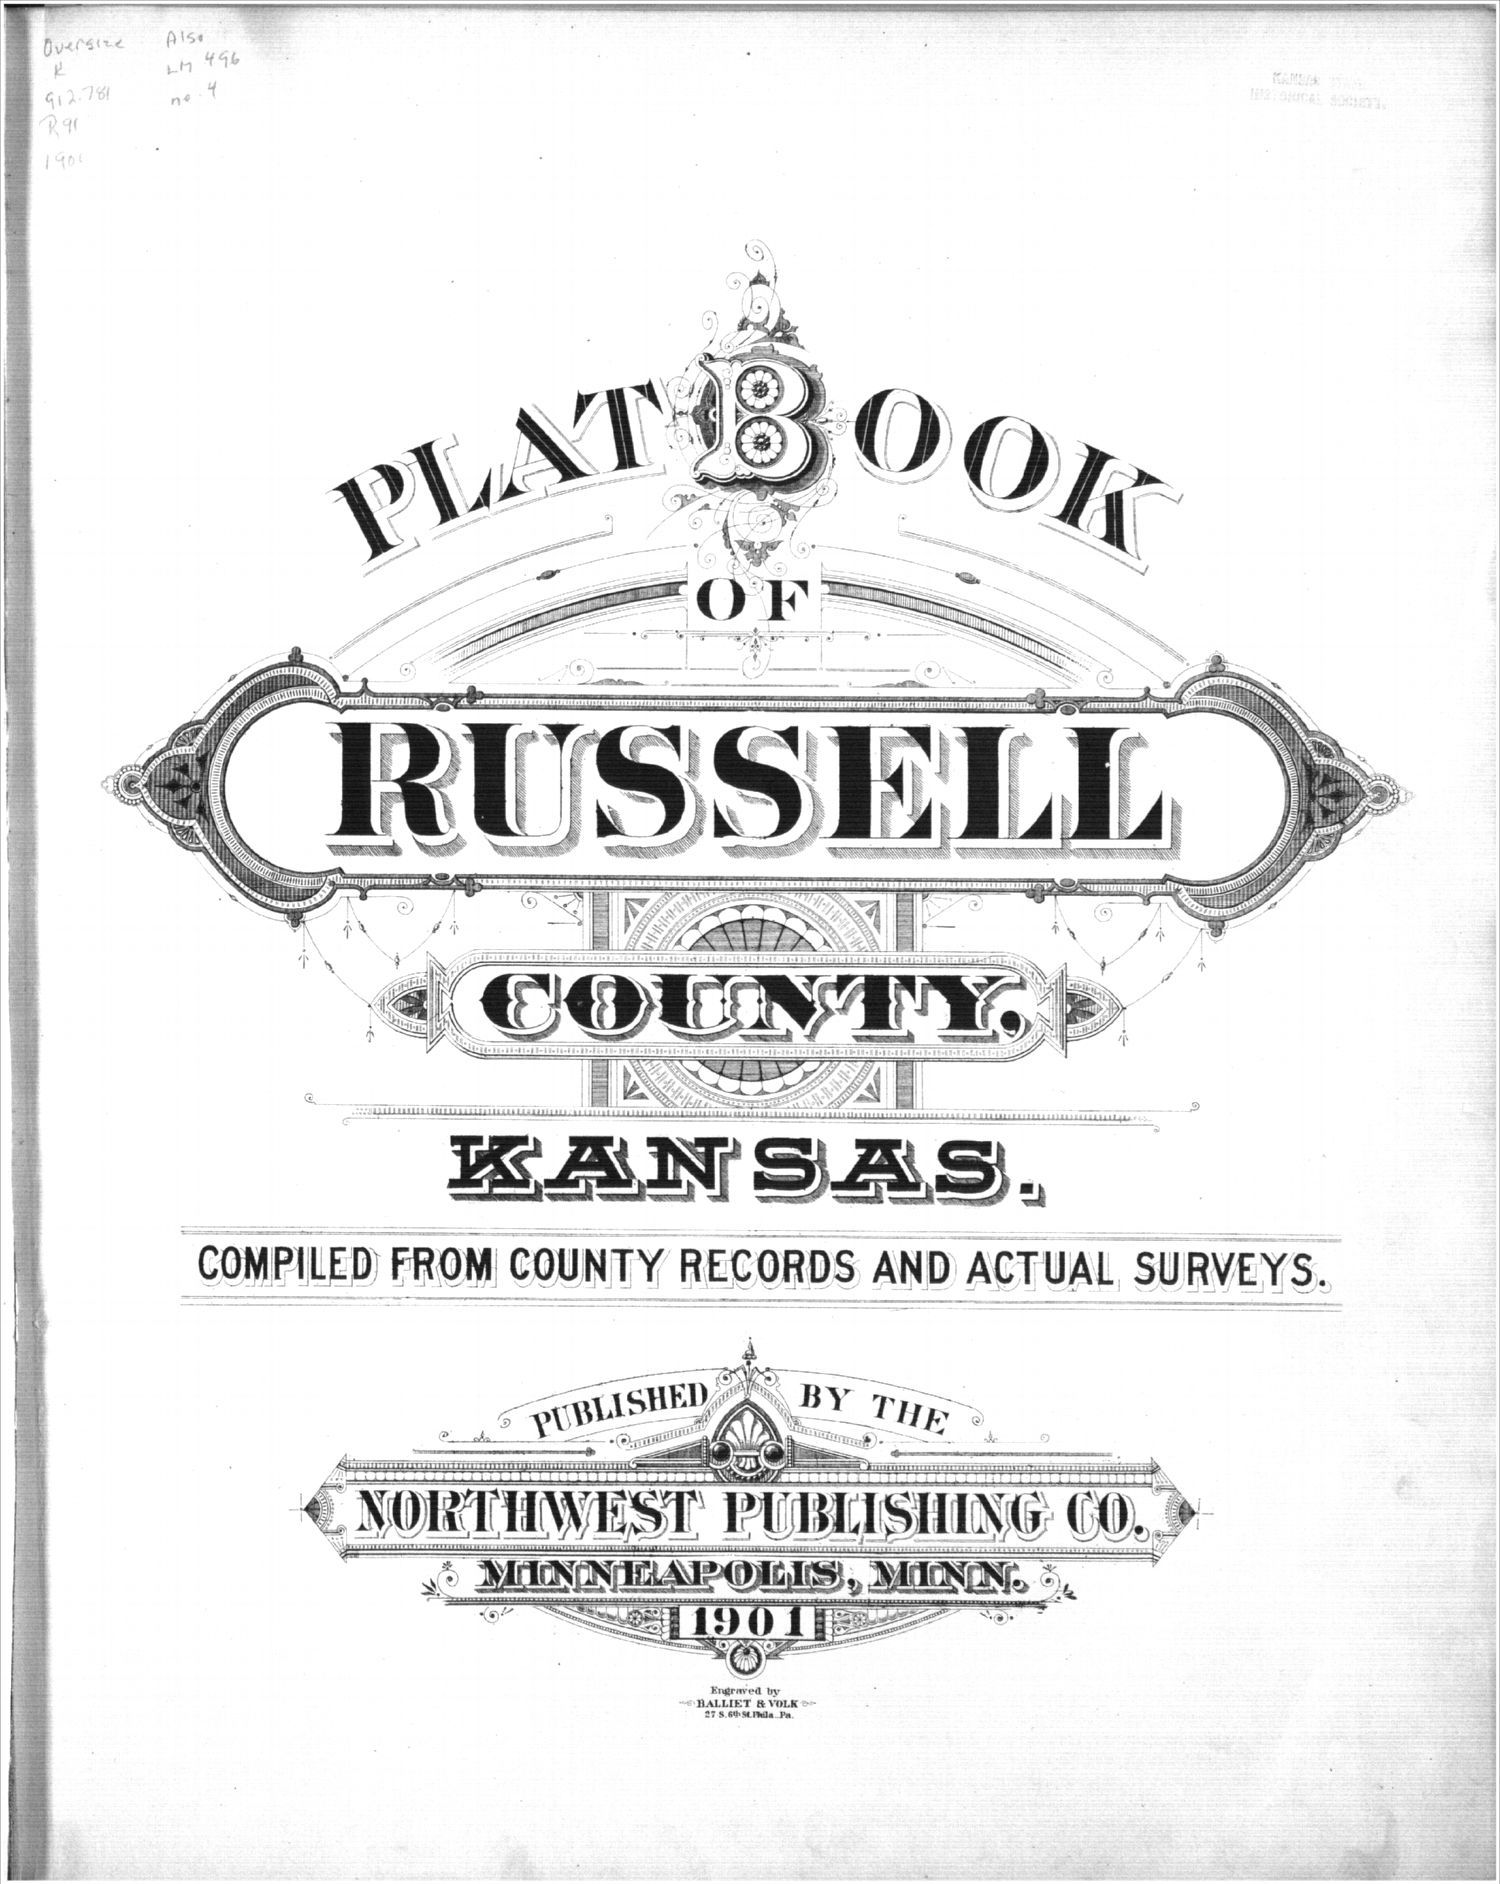 Plat book, Russell County, Kansas - Title Page